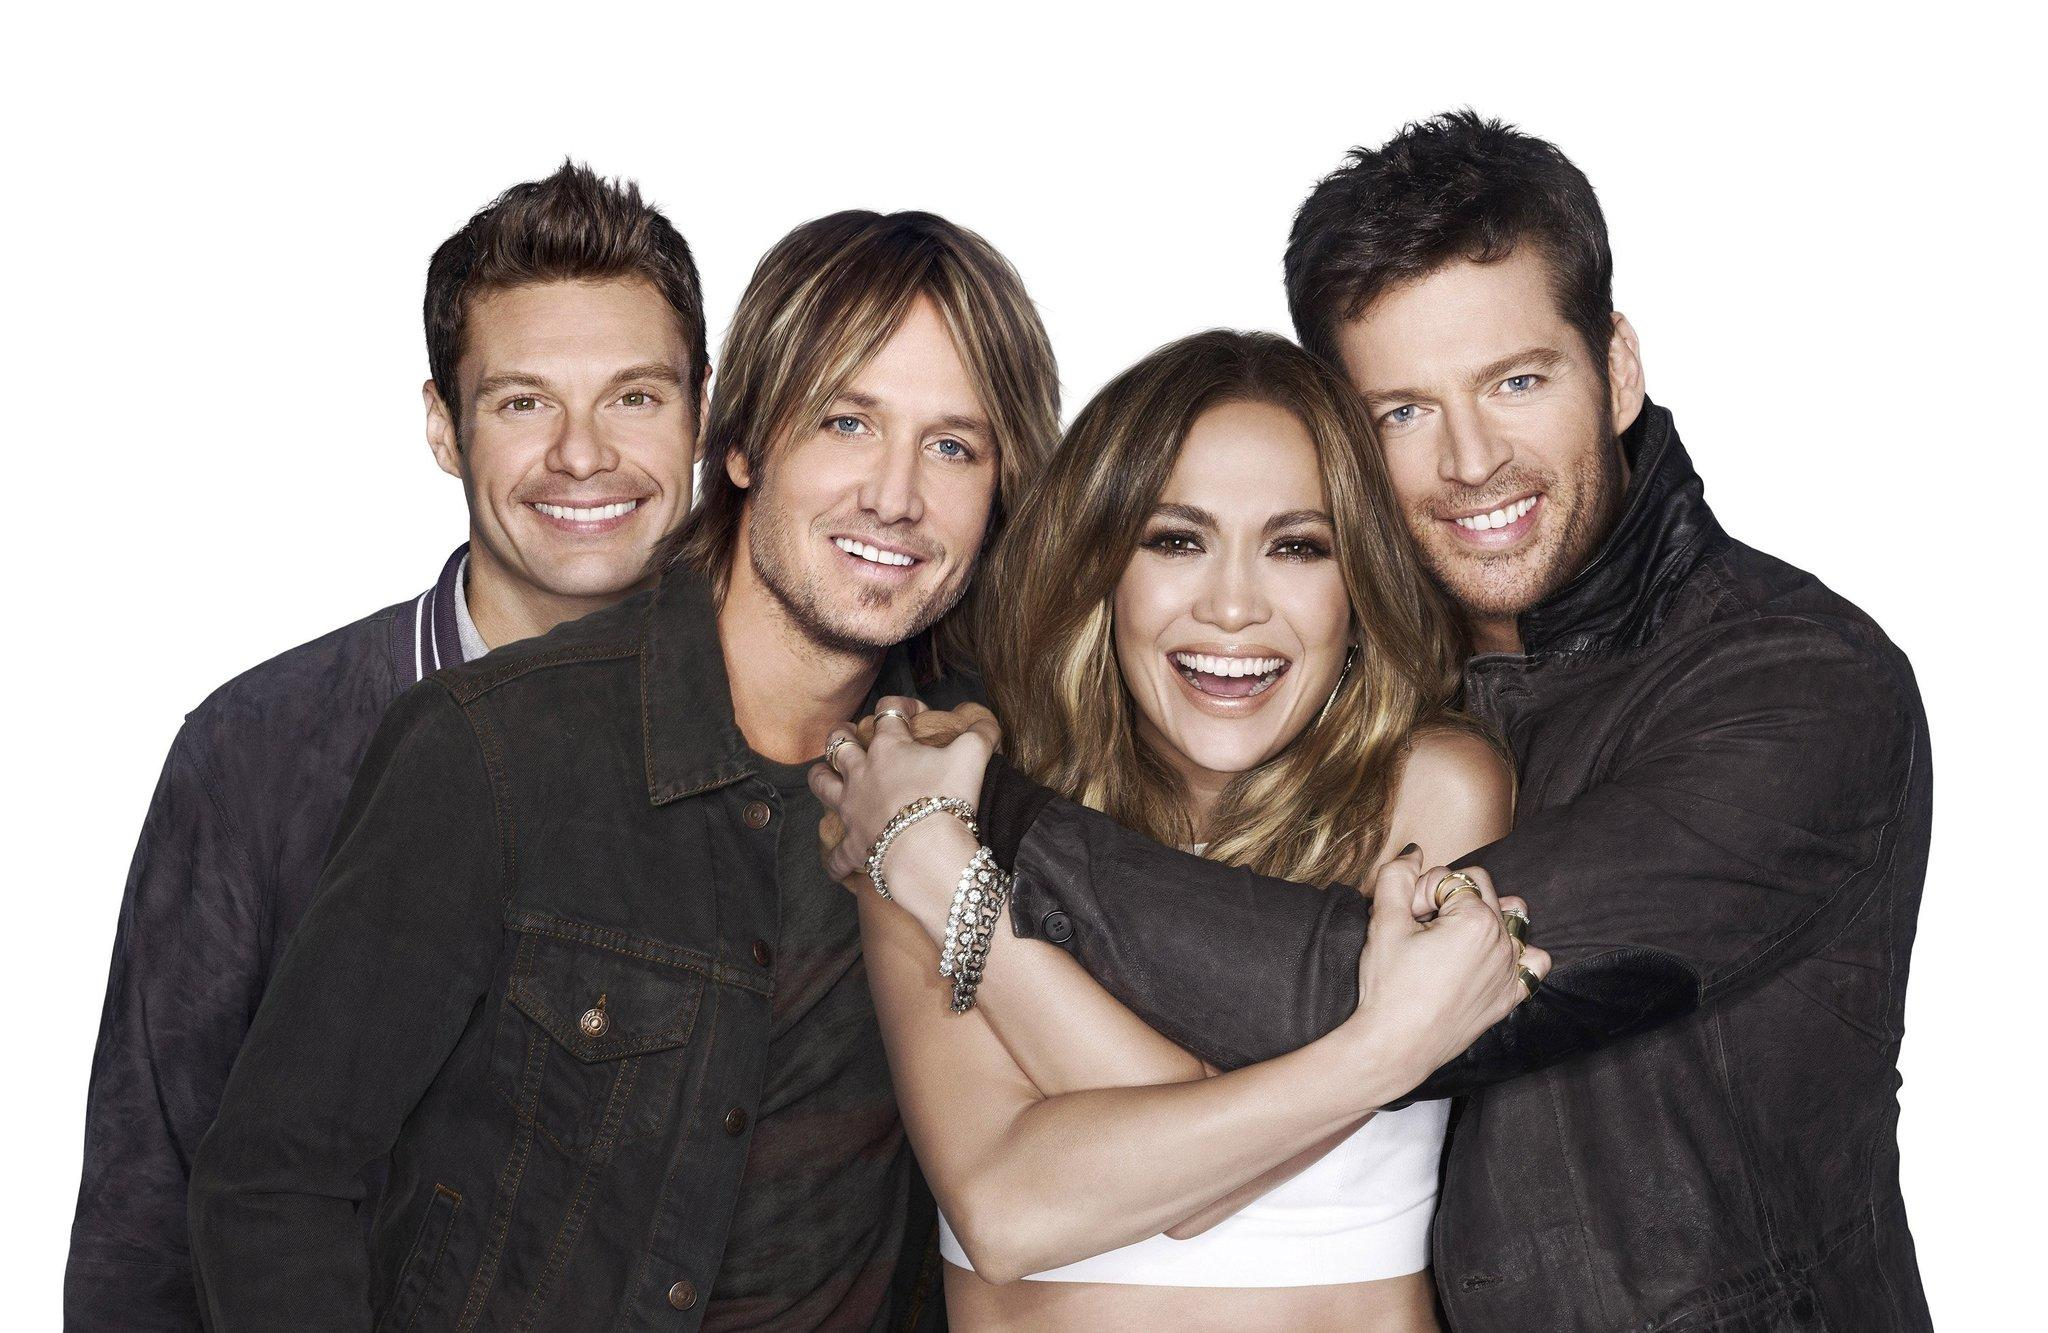 American Idol XIII stars, from left, host Ryan Seacrest, and judges Keith Urban, Jennifer Lopez and Harry Connick, Jr. The show returned with a two-night, four-hour premiere Wednesday, Jan. 15, 2014, and Thursday, Jan. 16. (Michael Becker/FOX Broadcasting Co./MCT)